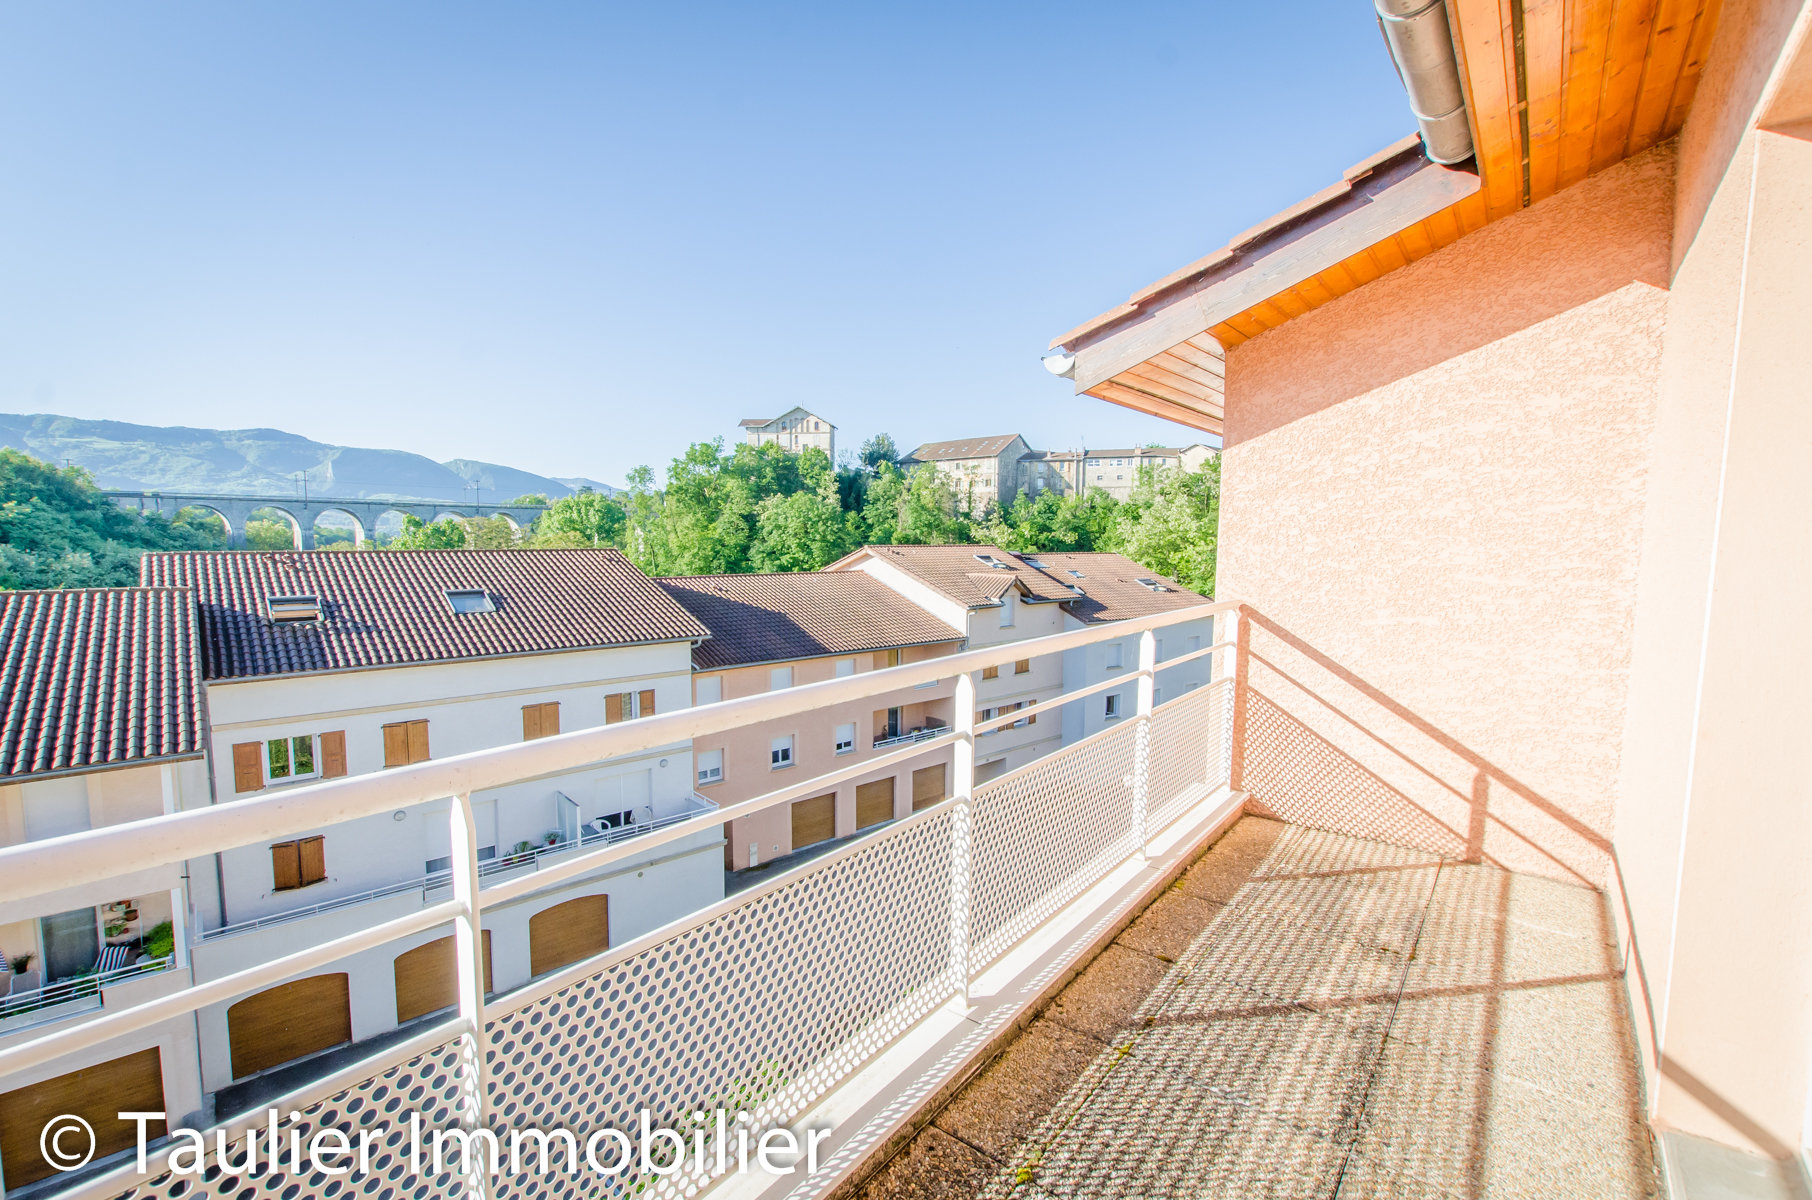 T4, 77m², ascenseur, garage, terrasses